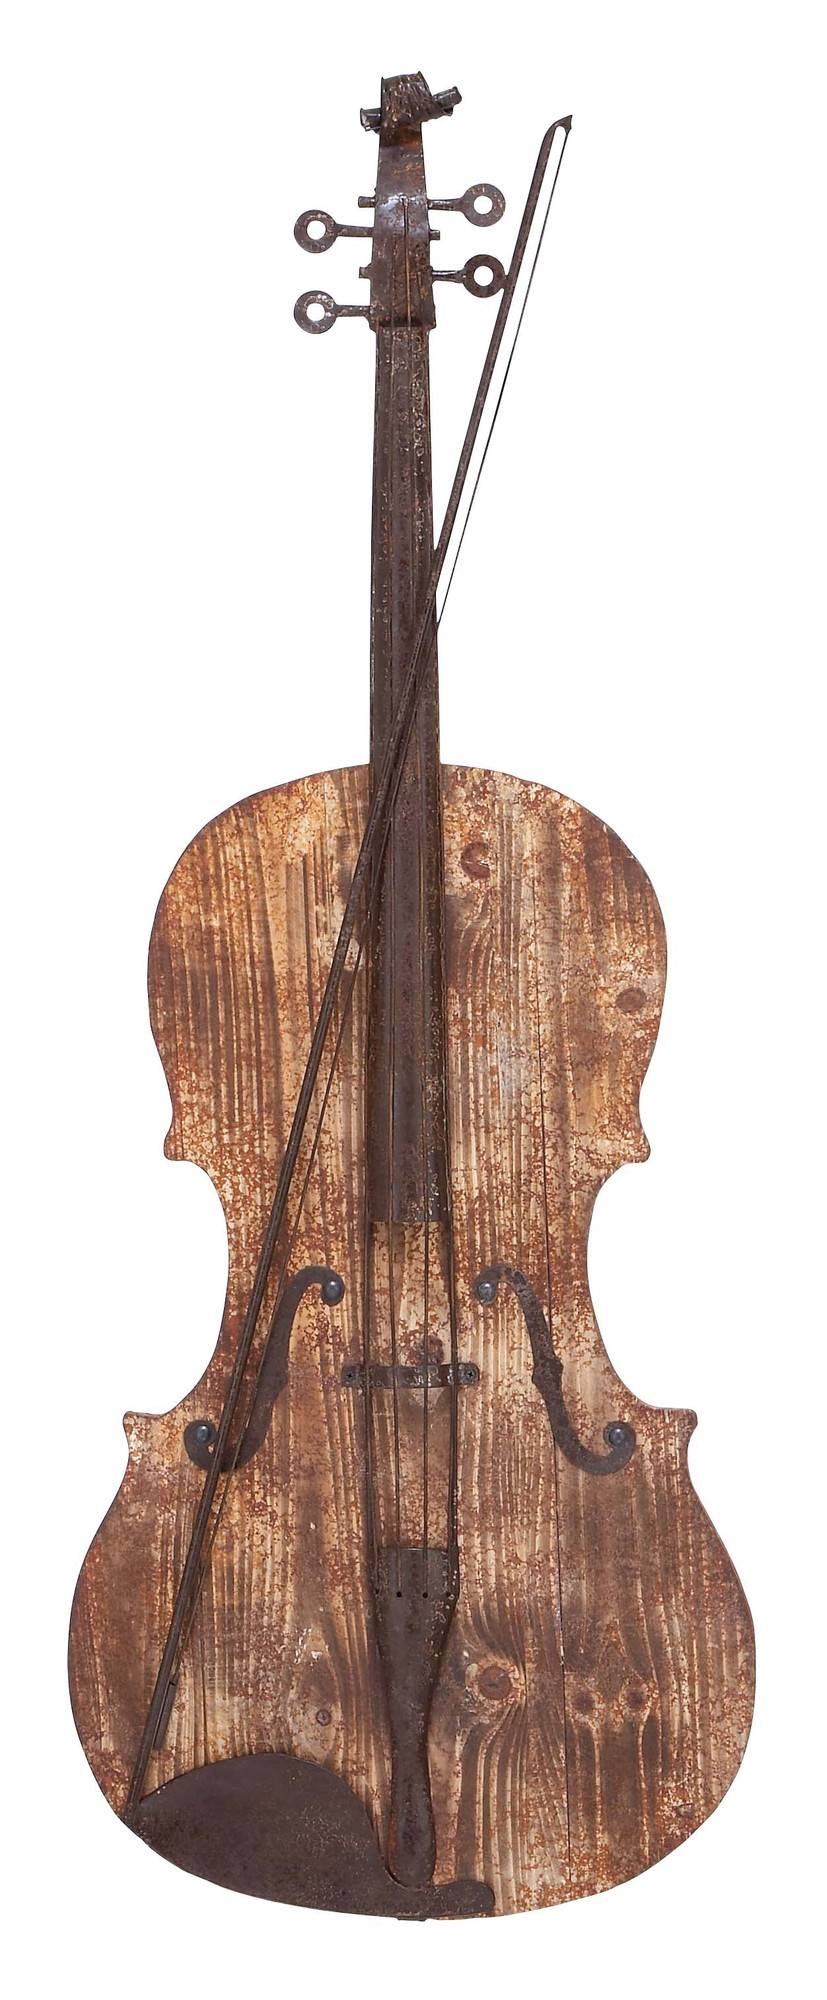 3D Violin – Musical Wood And Metal Wall Art Intended For Newest Musical Instruments Metal Wall Art (View 3 of 20)